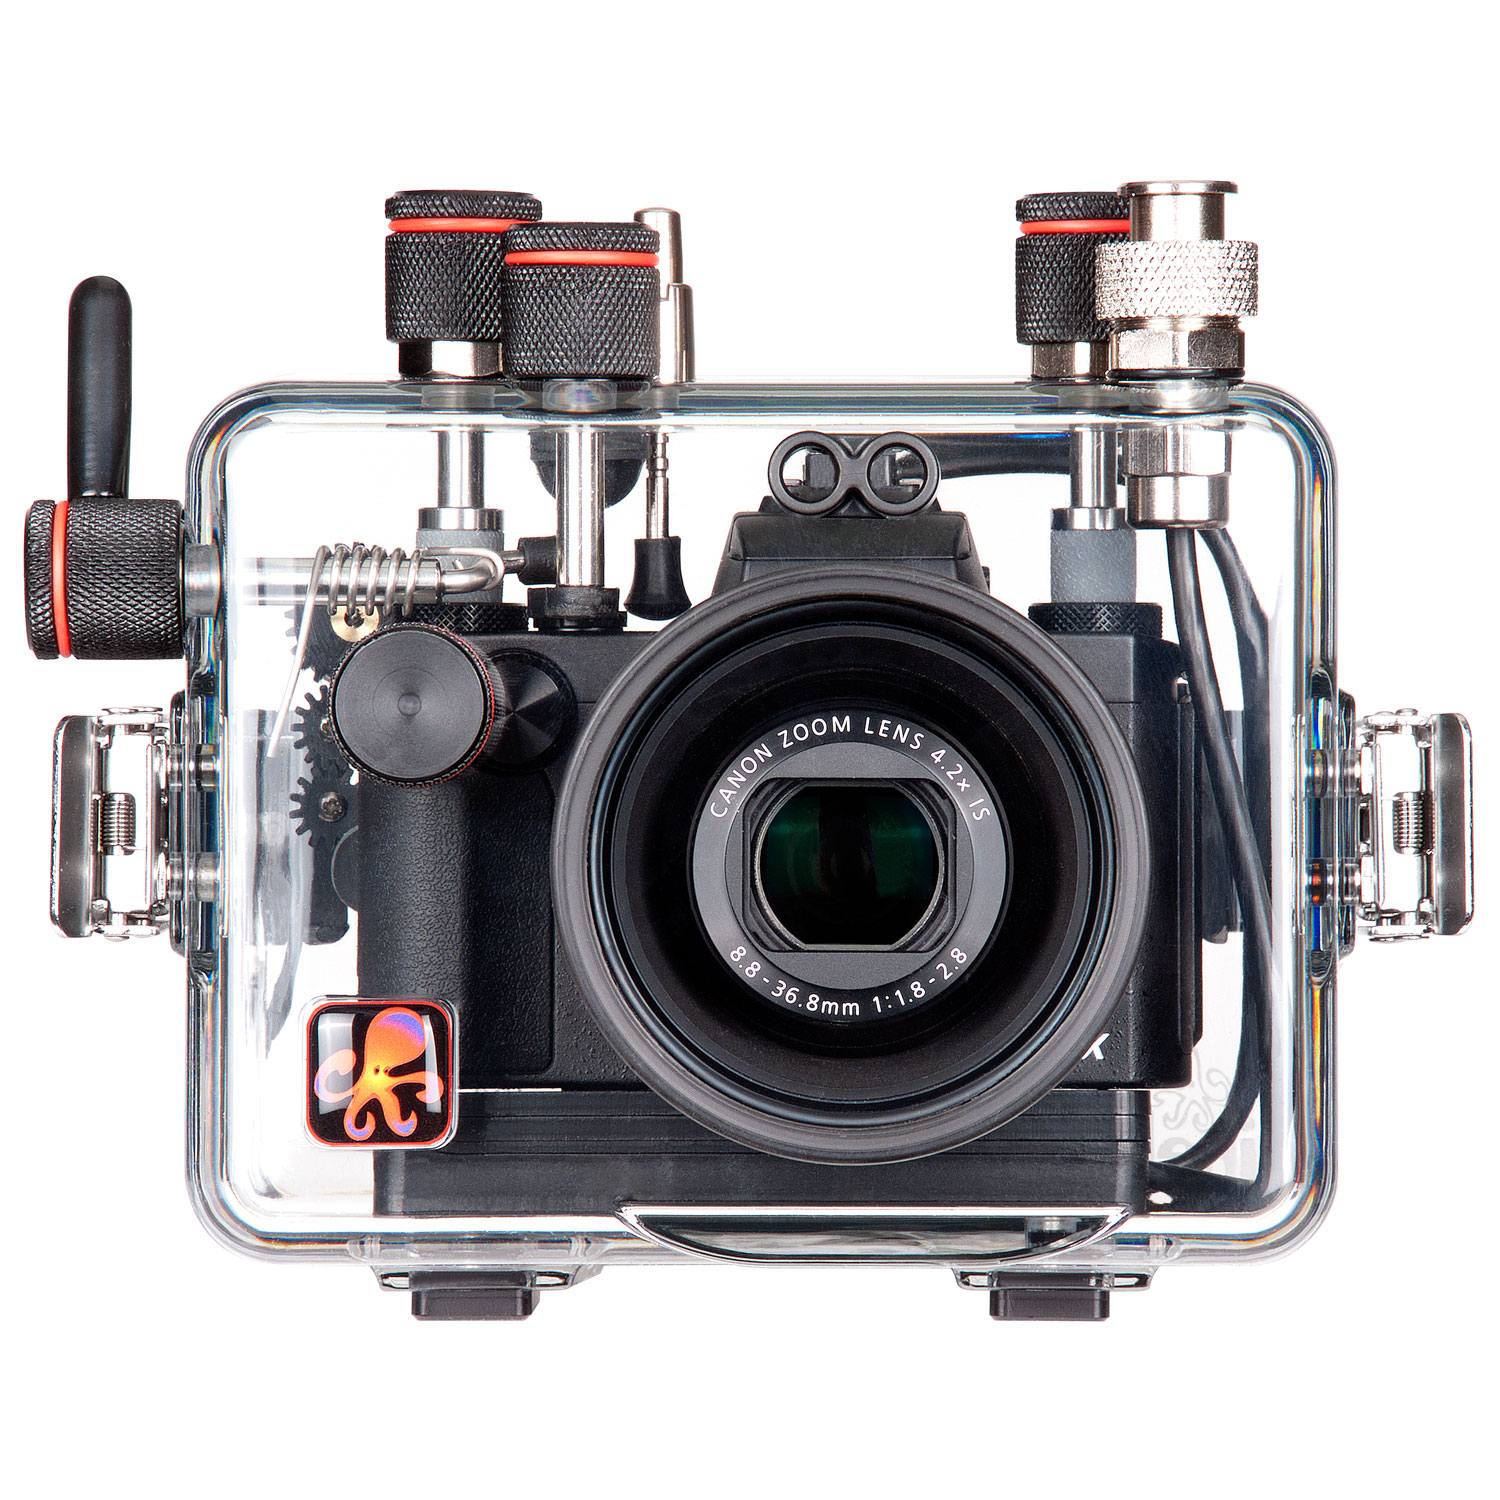 Canon 80d Used >> Ikelite Underwater Housing for Canon G5X Announced | Mozaik UW